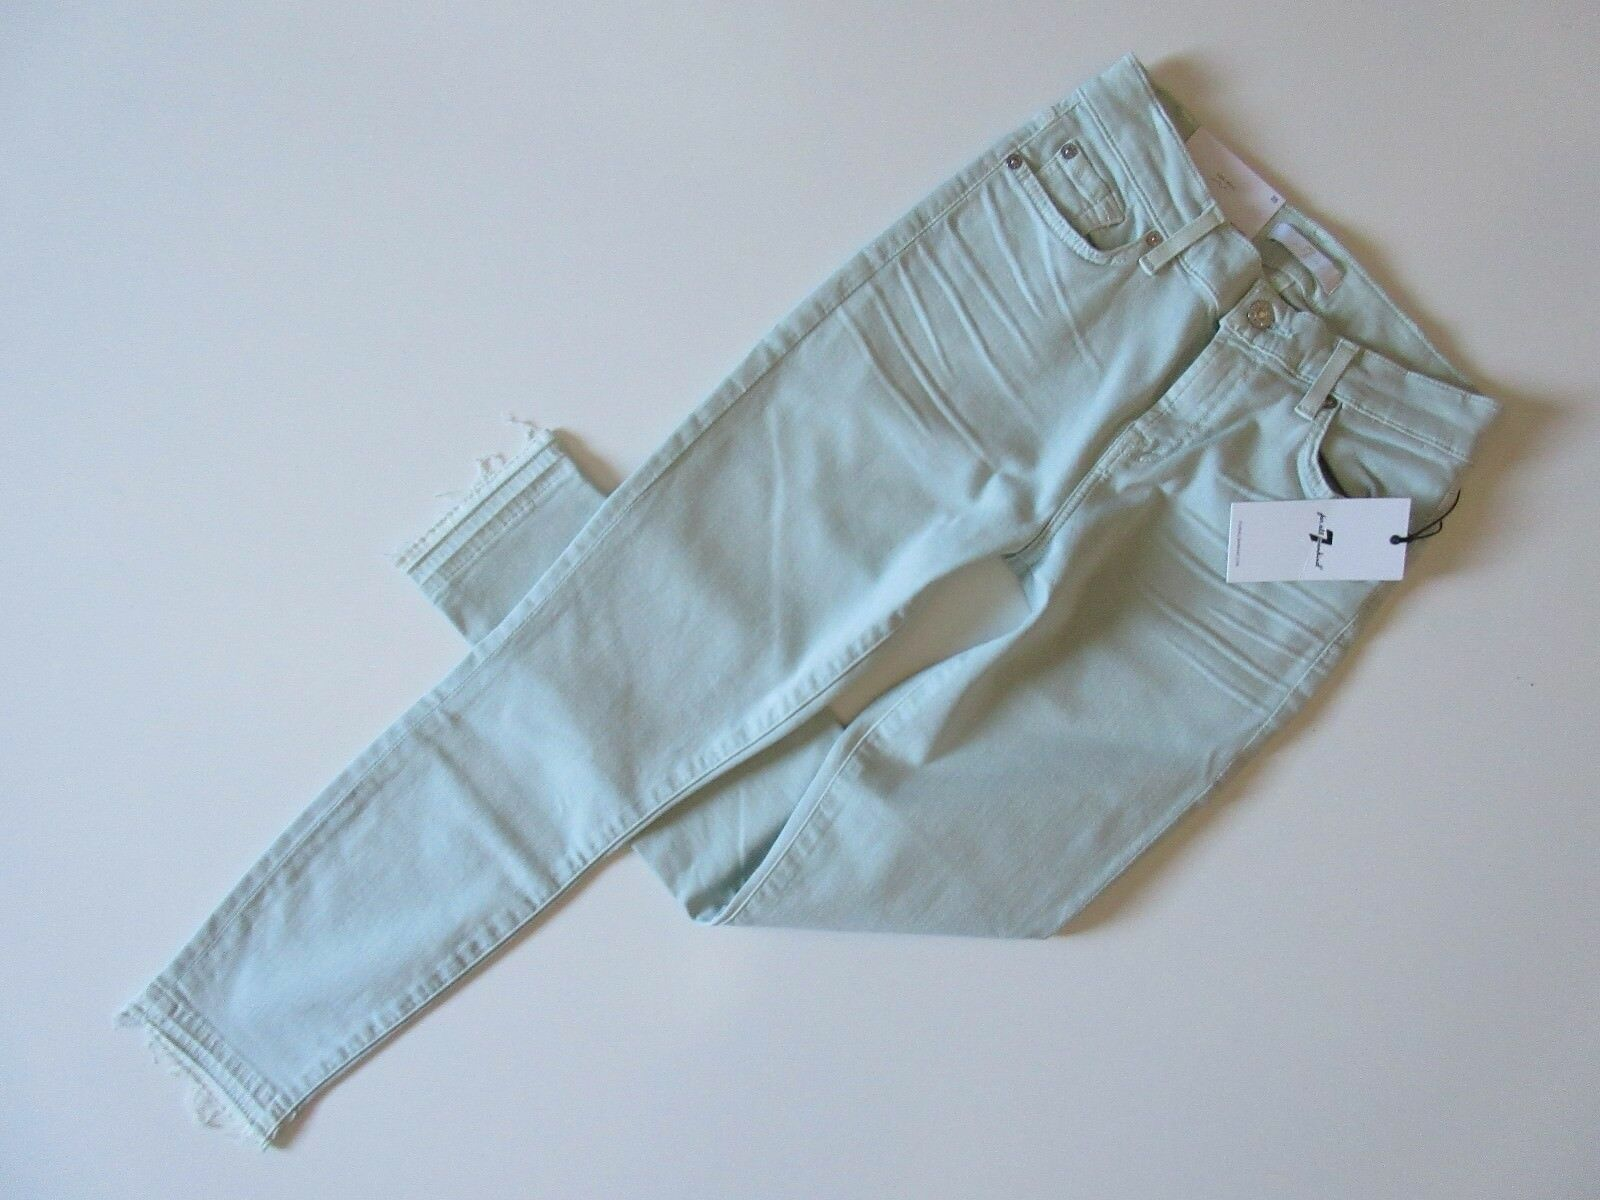 NWT 7 For All Mankind Ankle Skinny in Mint Green Released Hem Stretch Jeans 25